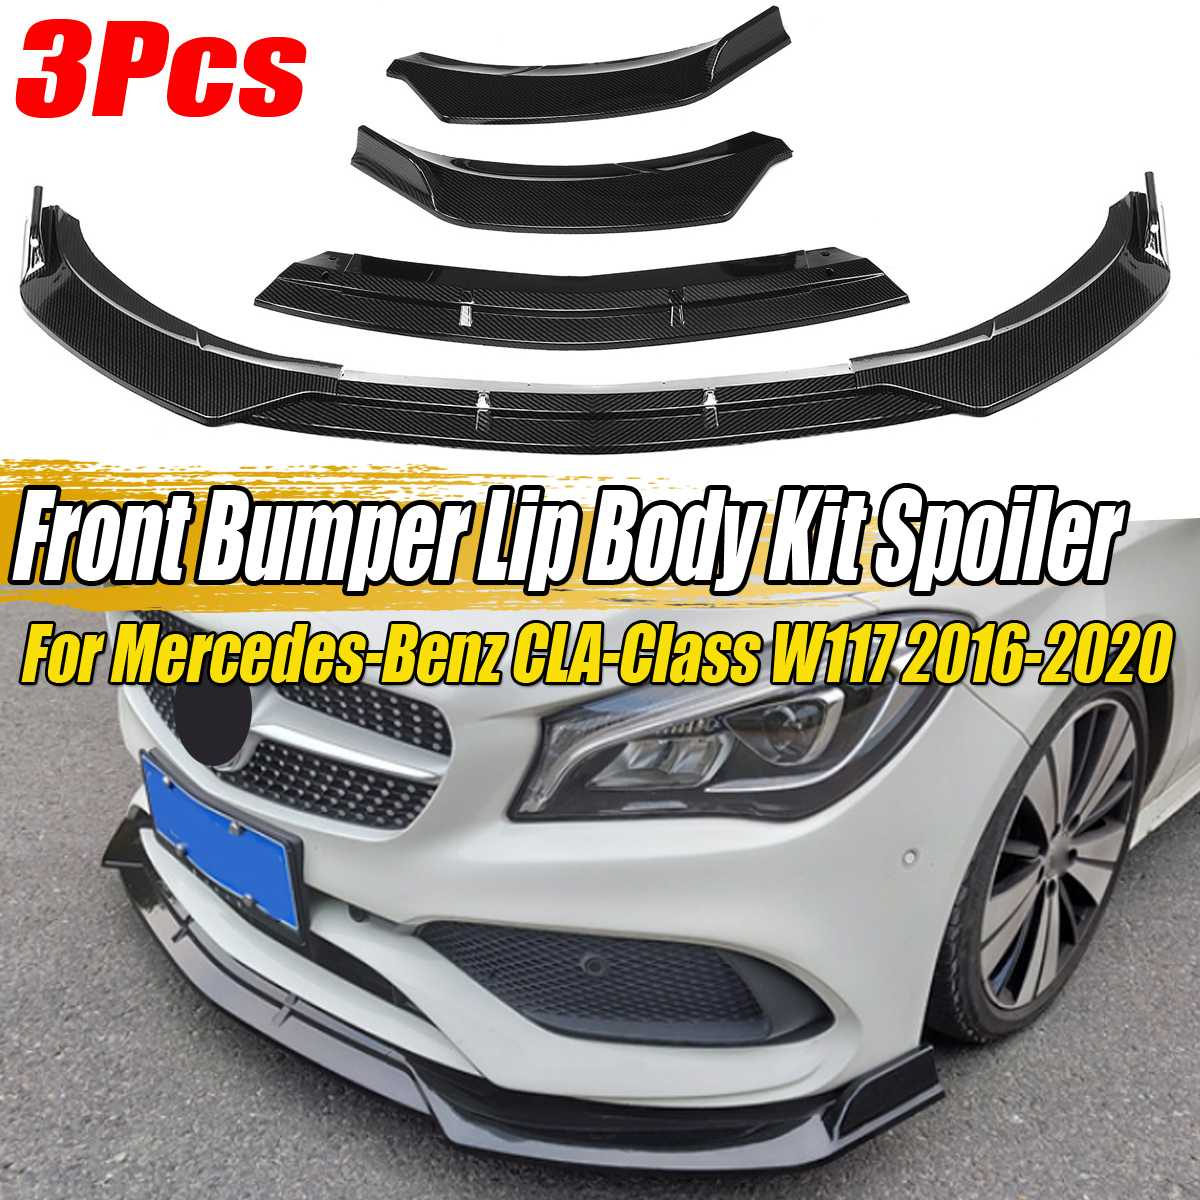 3PCS Car Front Bumper Splitter Lip Spoiler Diffuser Guard Protection Cover Trim For Mercedes For Benz CLA-Class W117 2016-2020